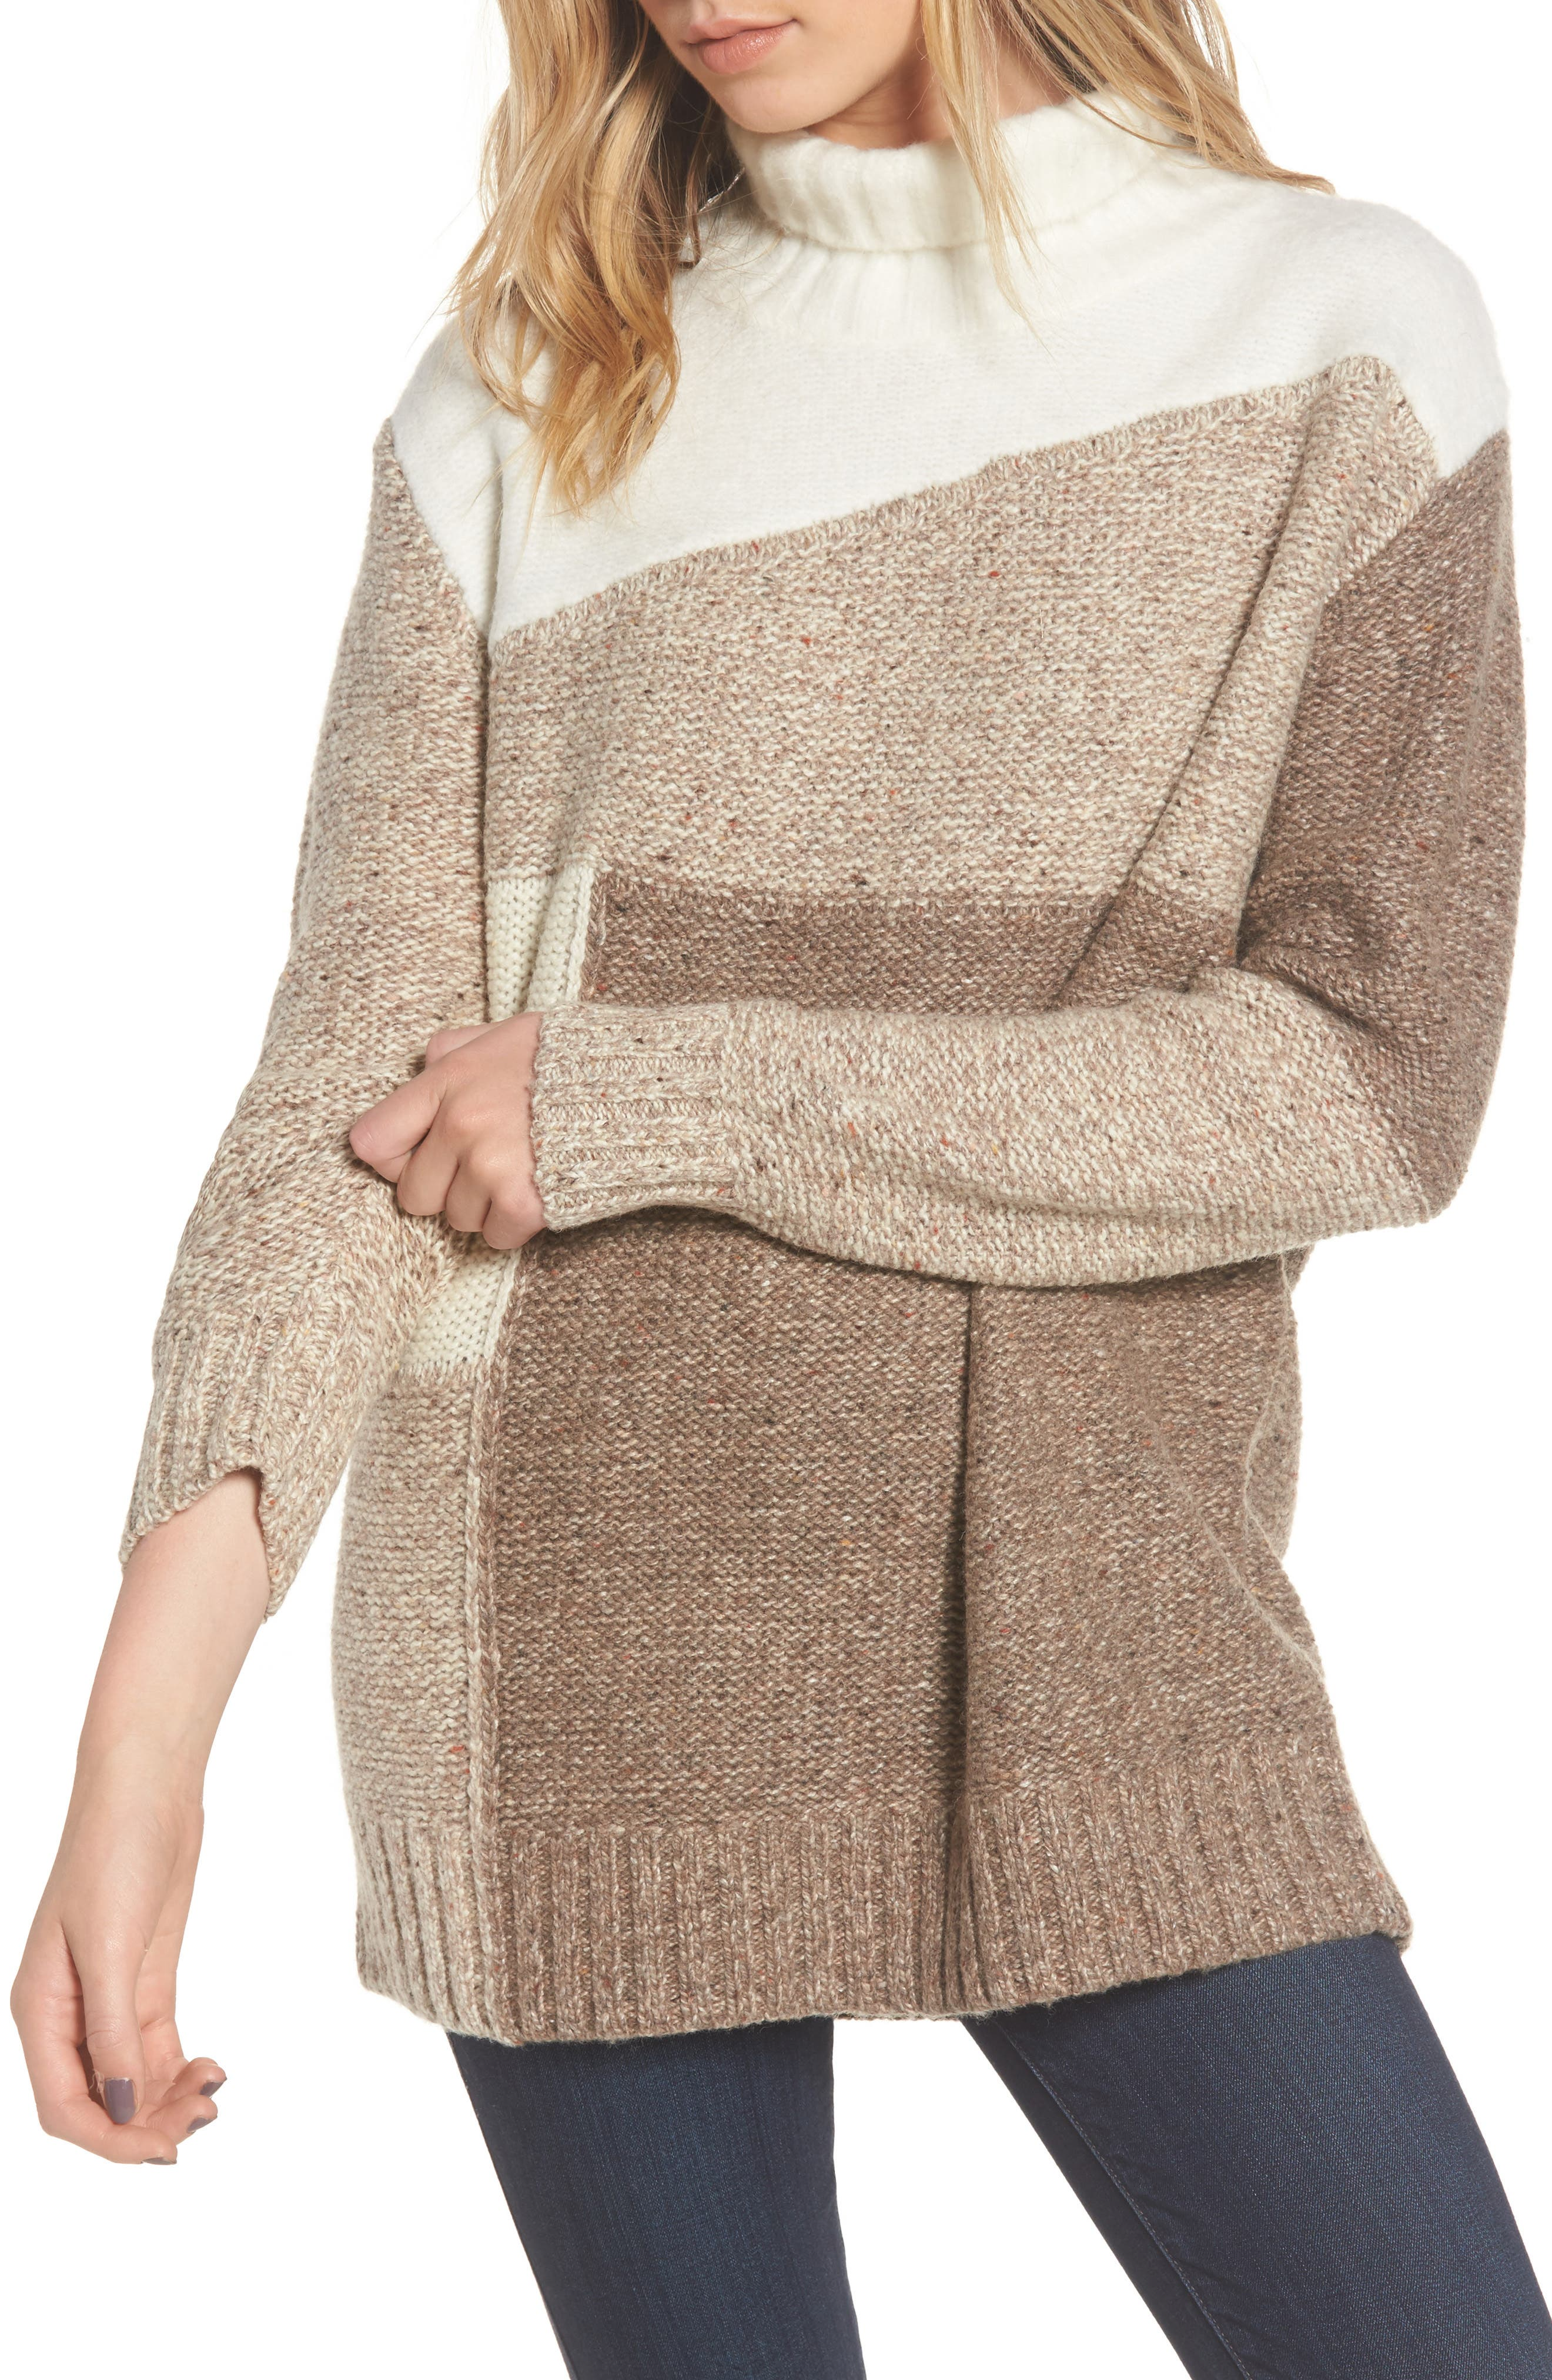 Anna Patchwork Turtleneck,                             Main thumbnail 1, color,                             Winter White